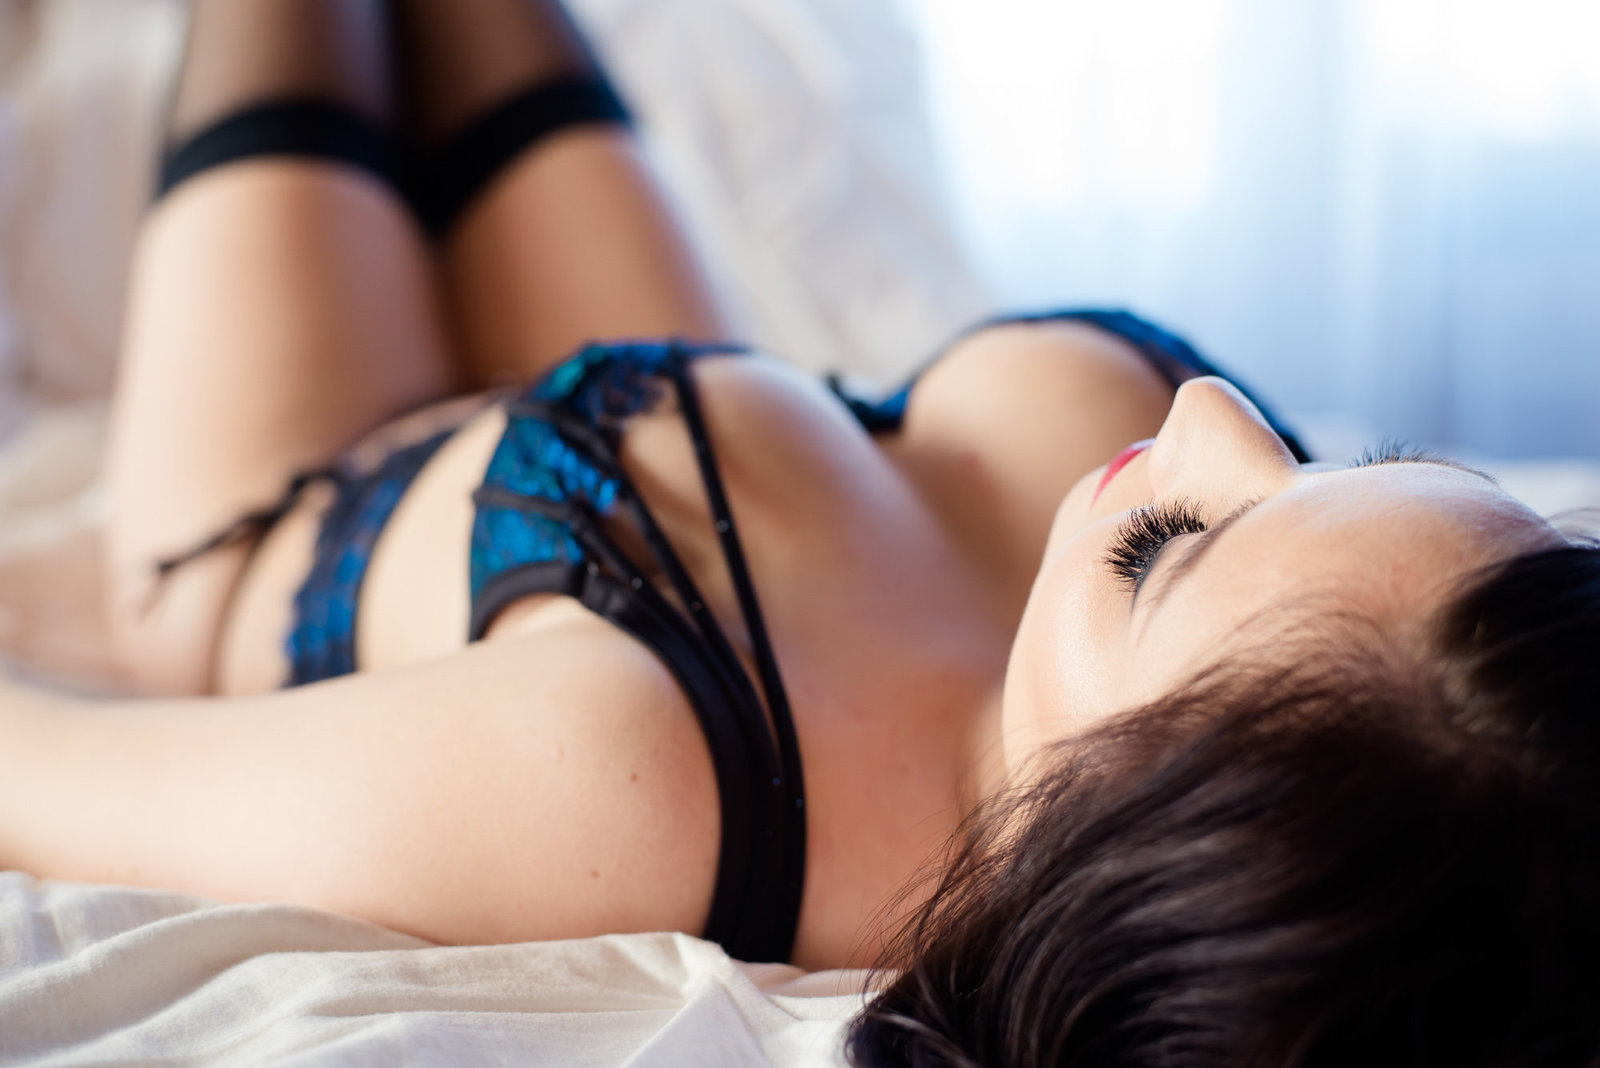 boudoir photos for him